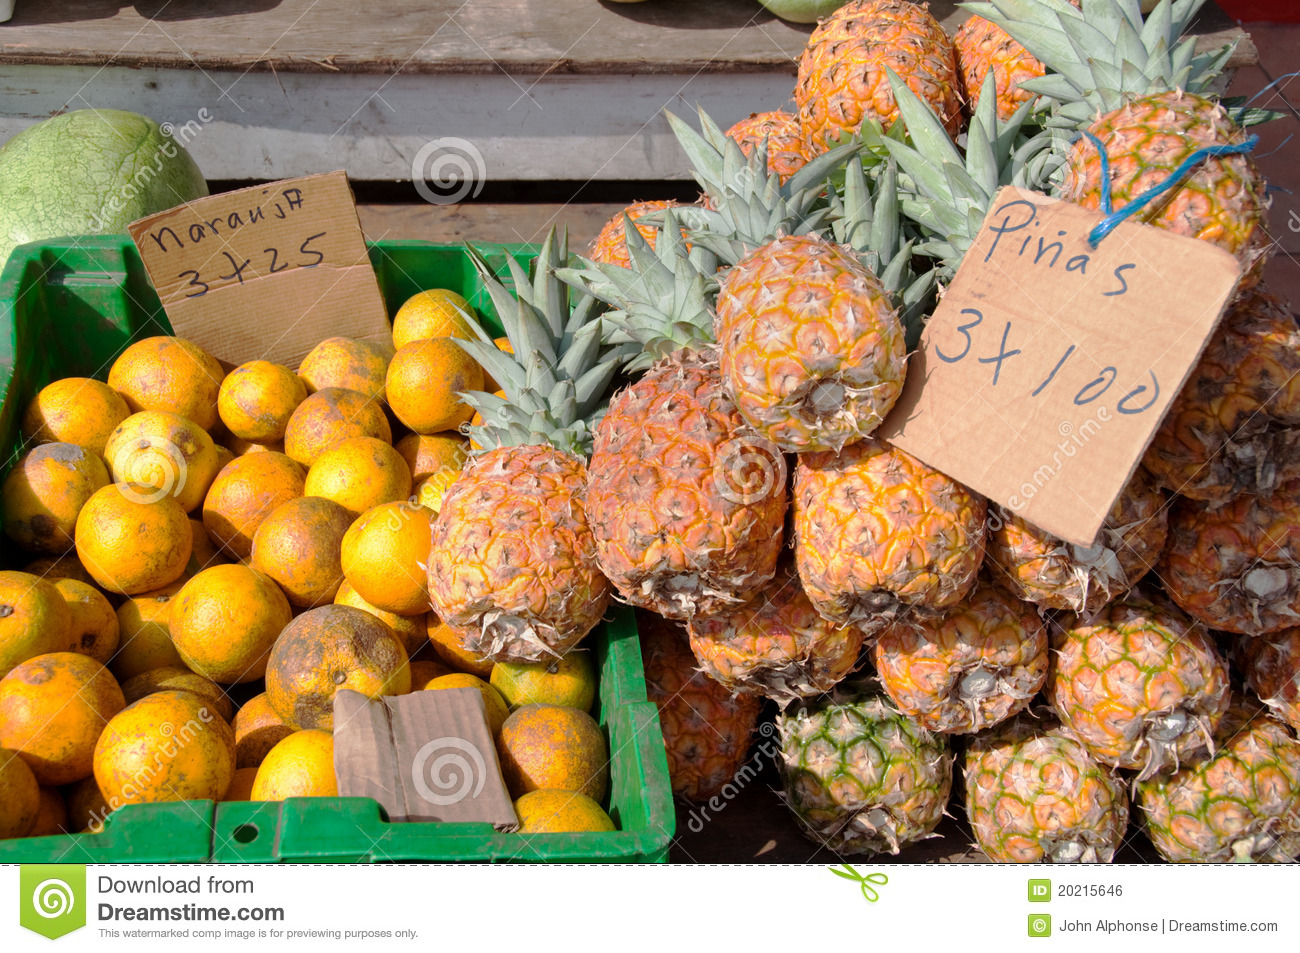 Pineapples and Oranges for Sale at Fruit Stand